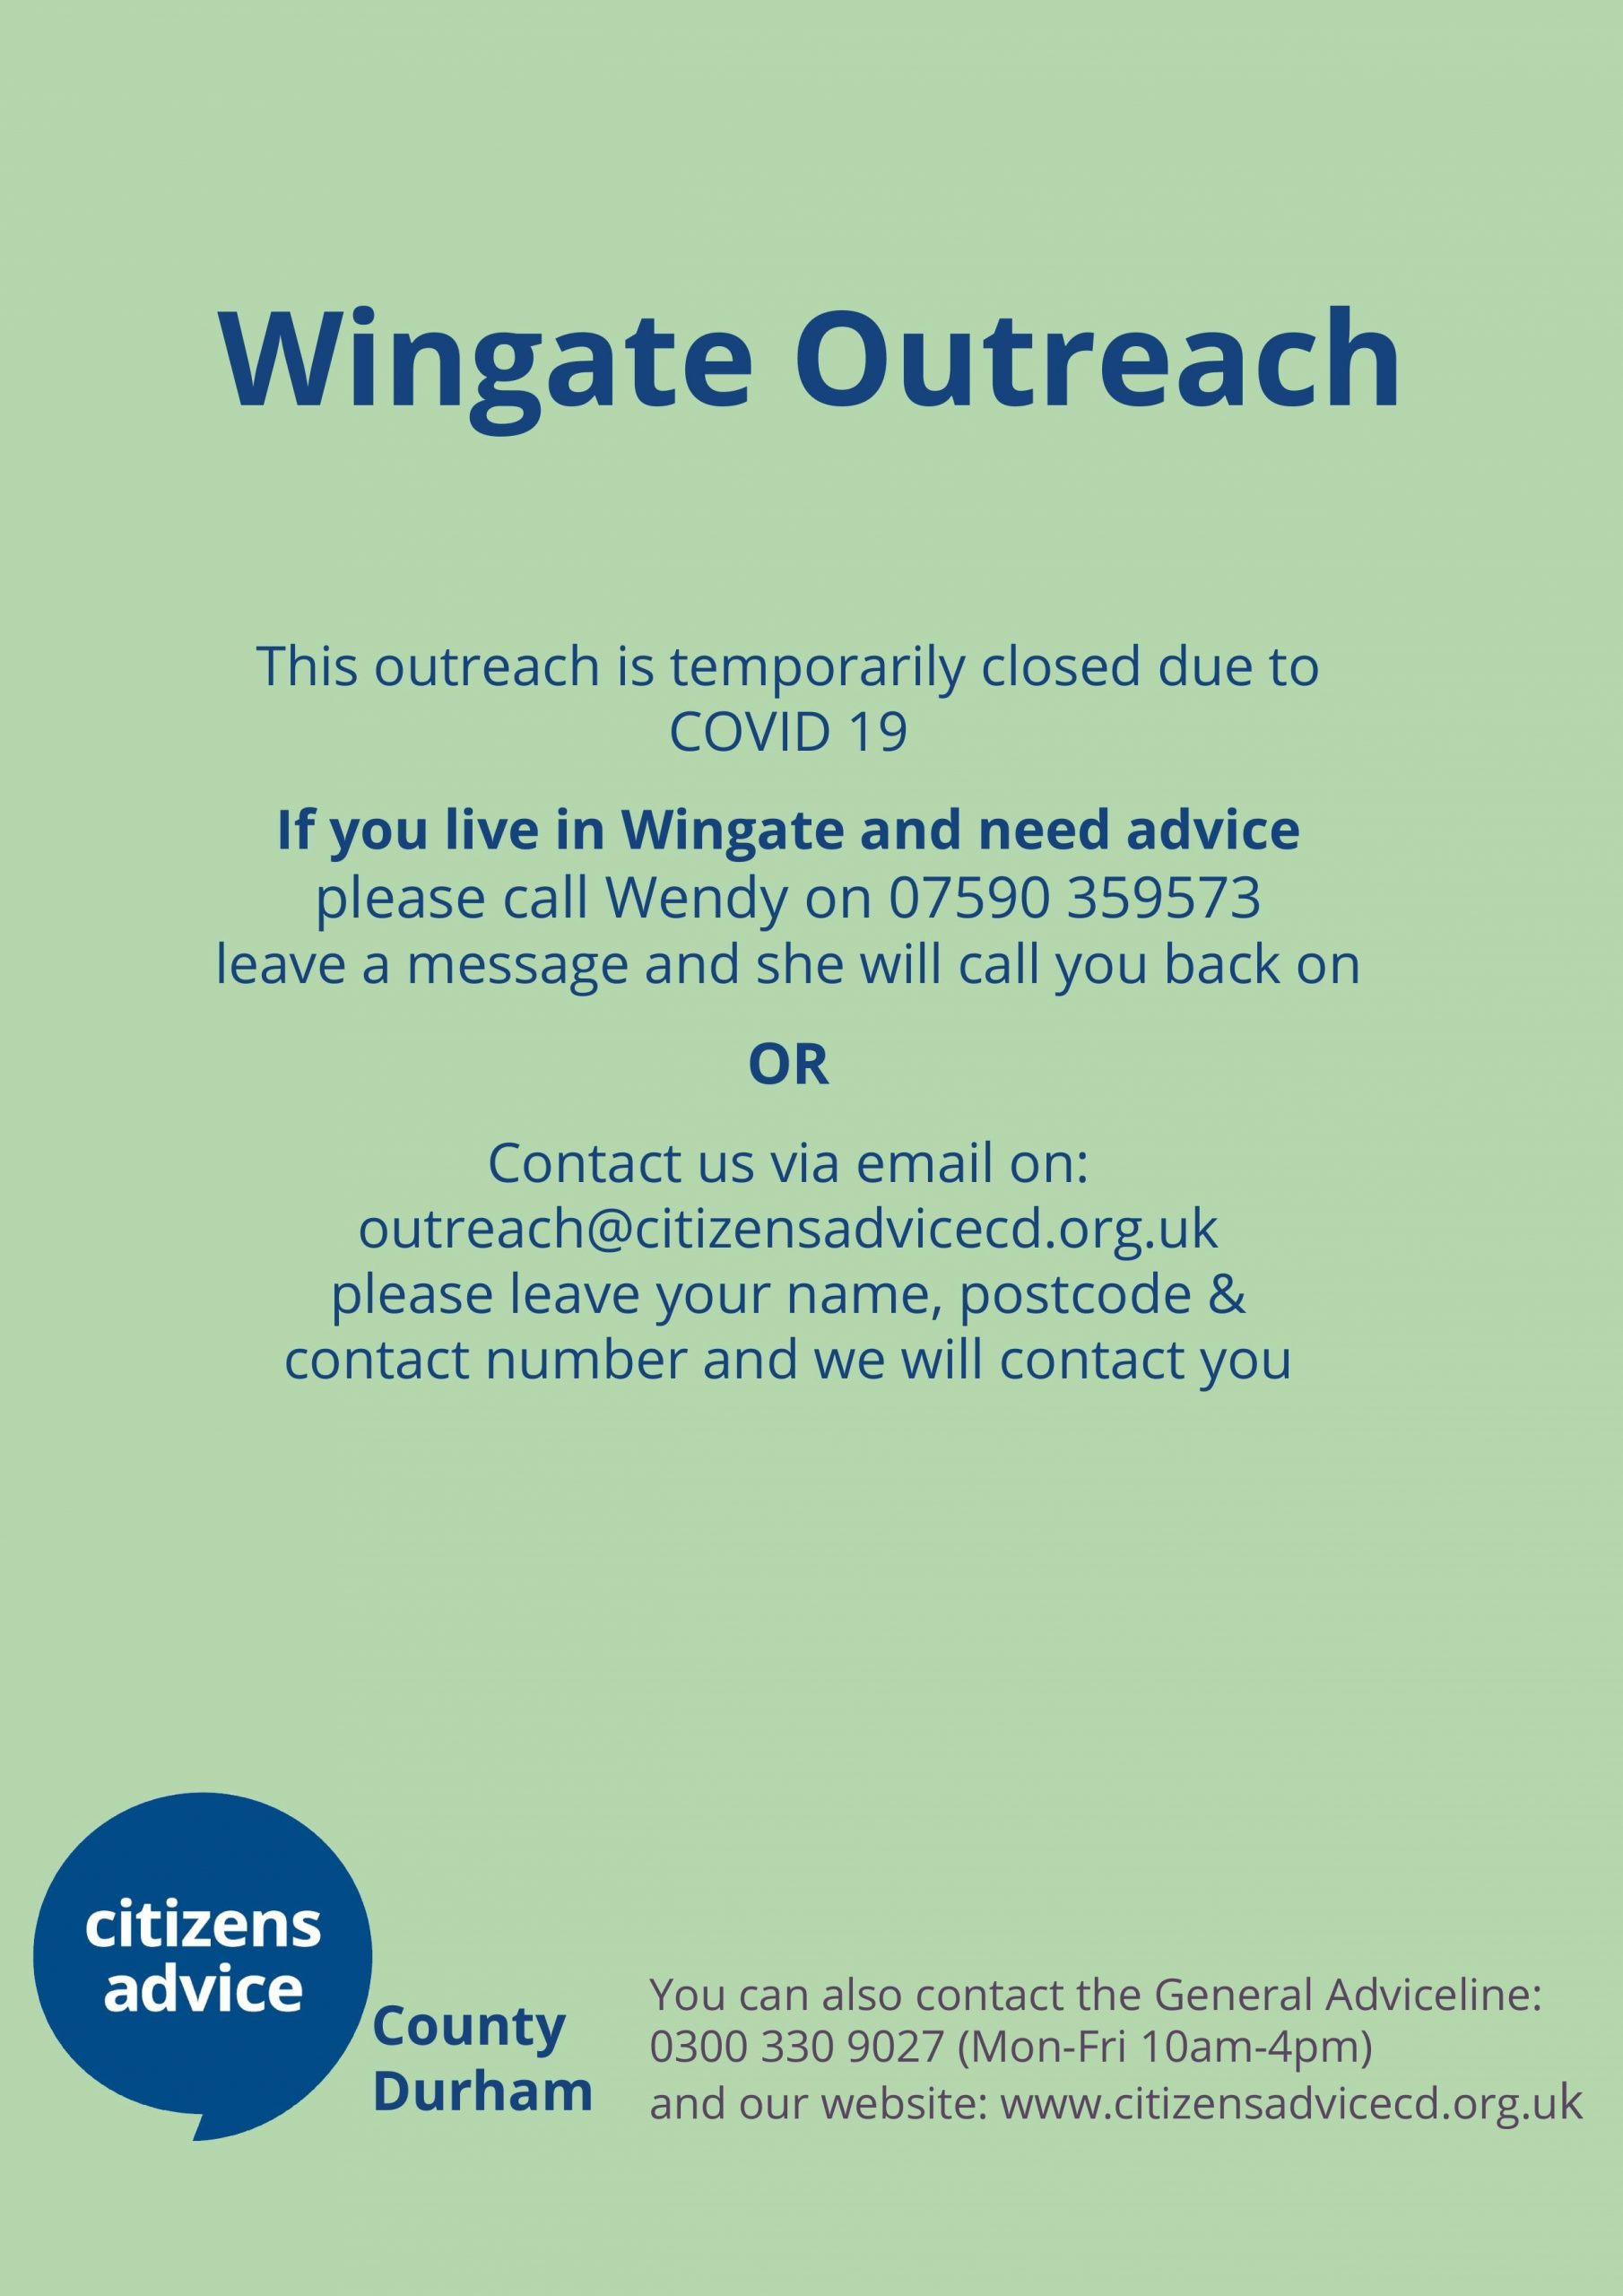 Wingate Outreach